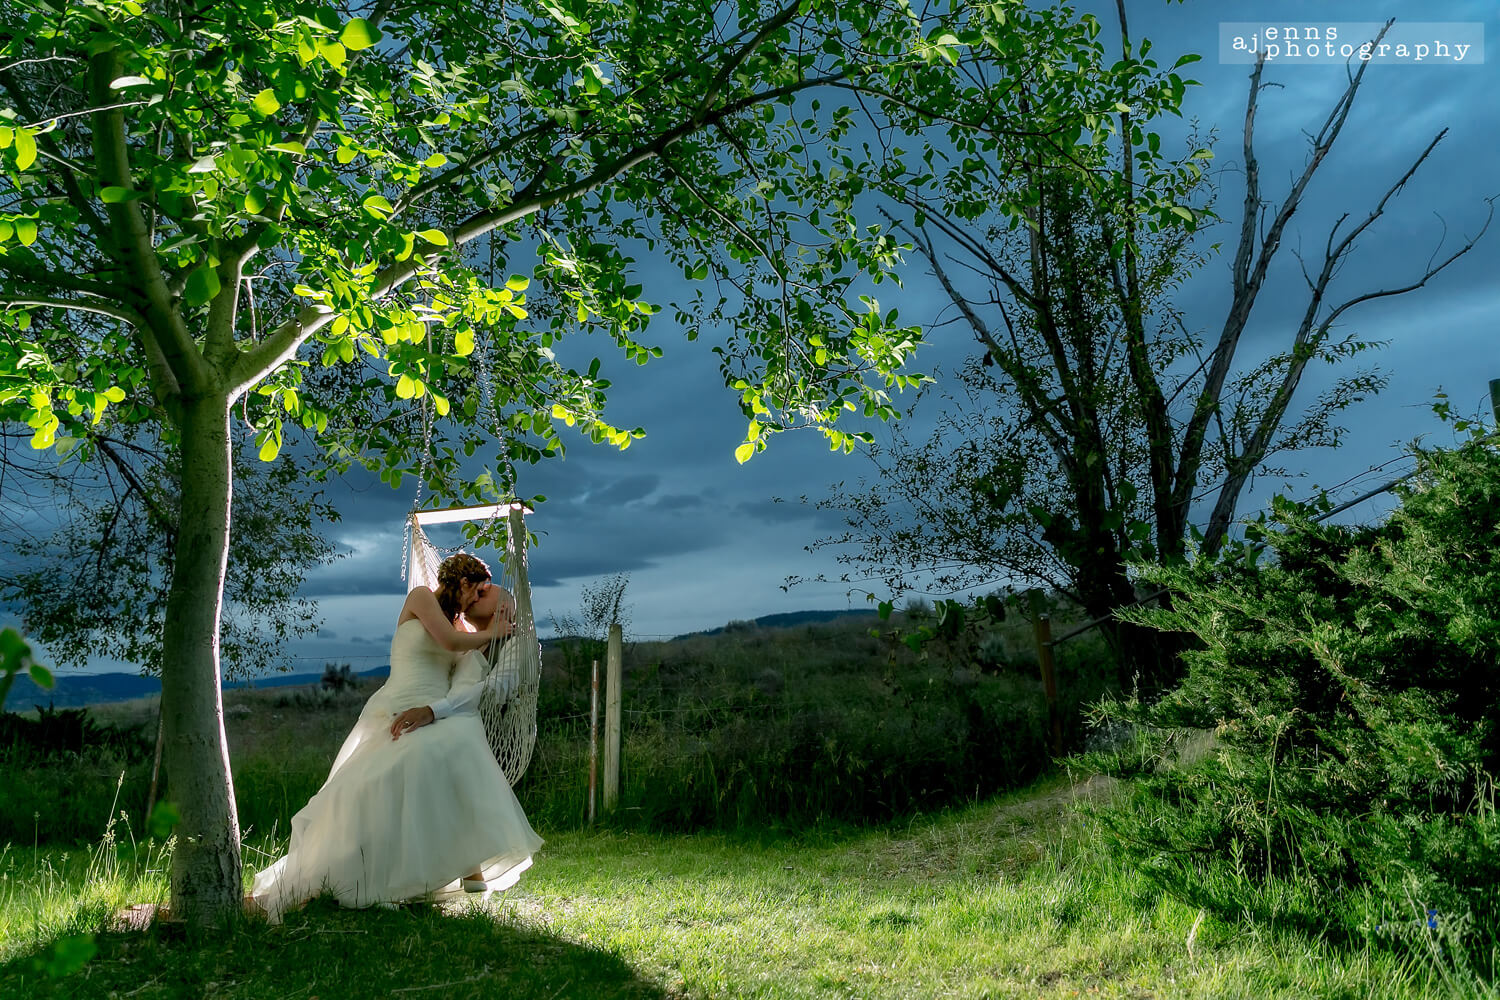 The bride sitting on the groom in a hanging hammock chair at dusk